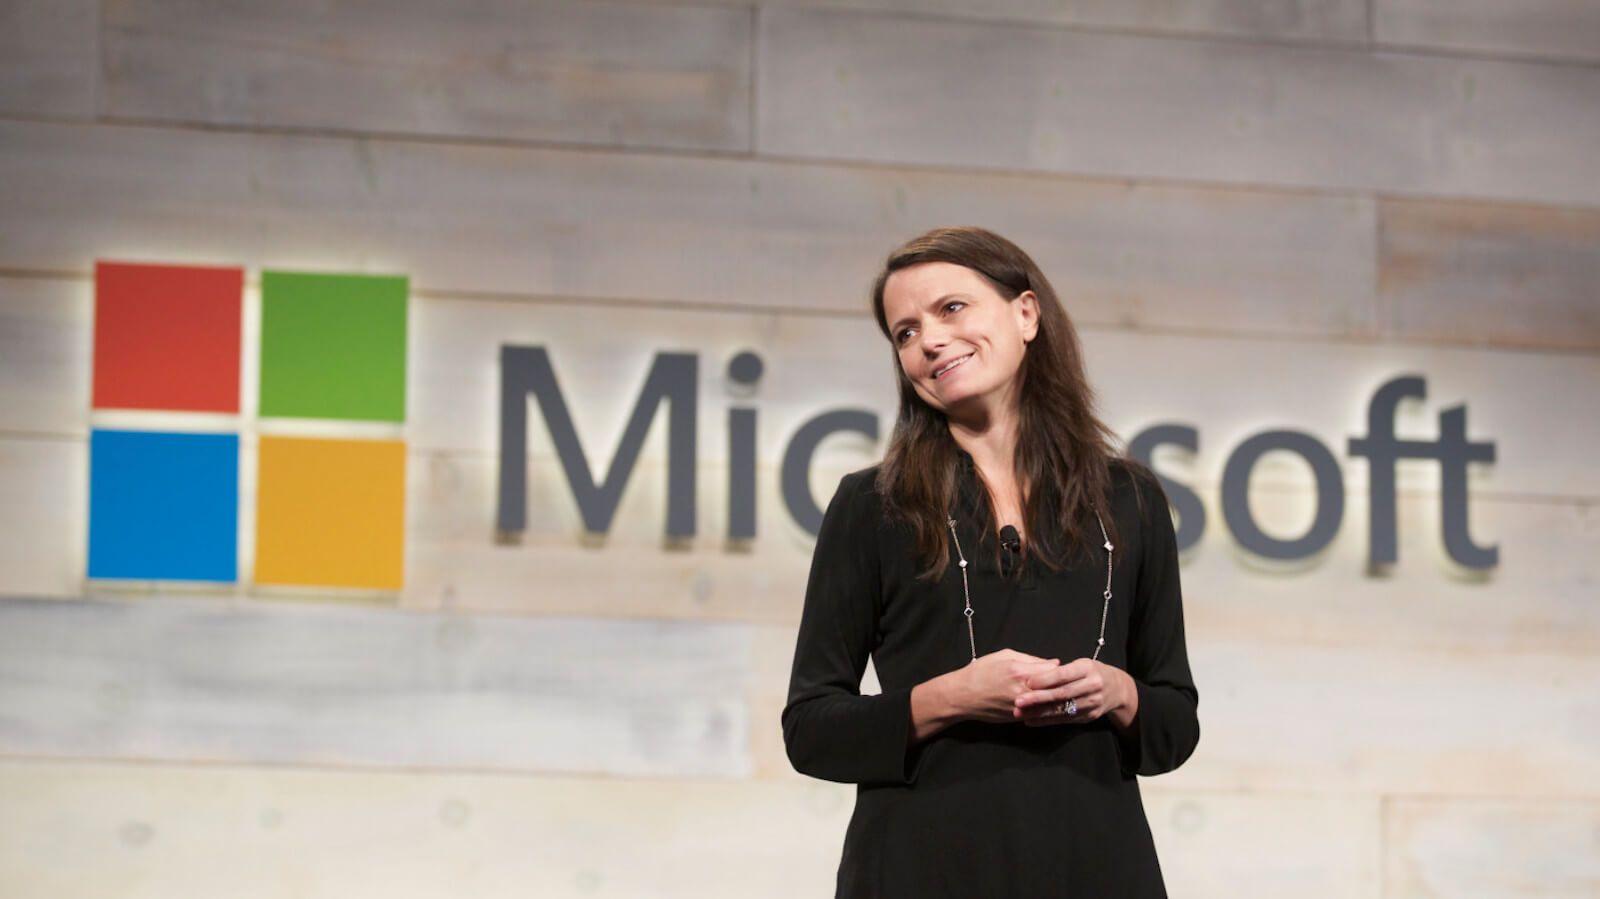 Intrapersonal Communication: Amy Hood, The Woman Behind Microsoft's $1 Trillion Empire